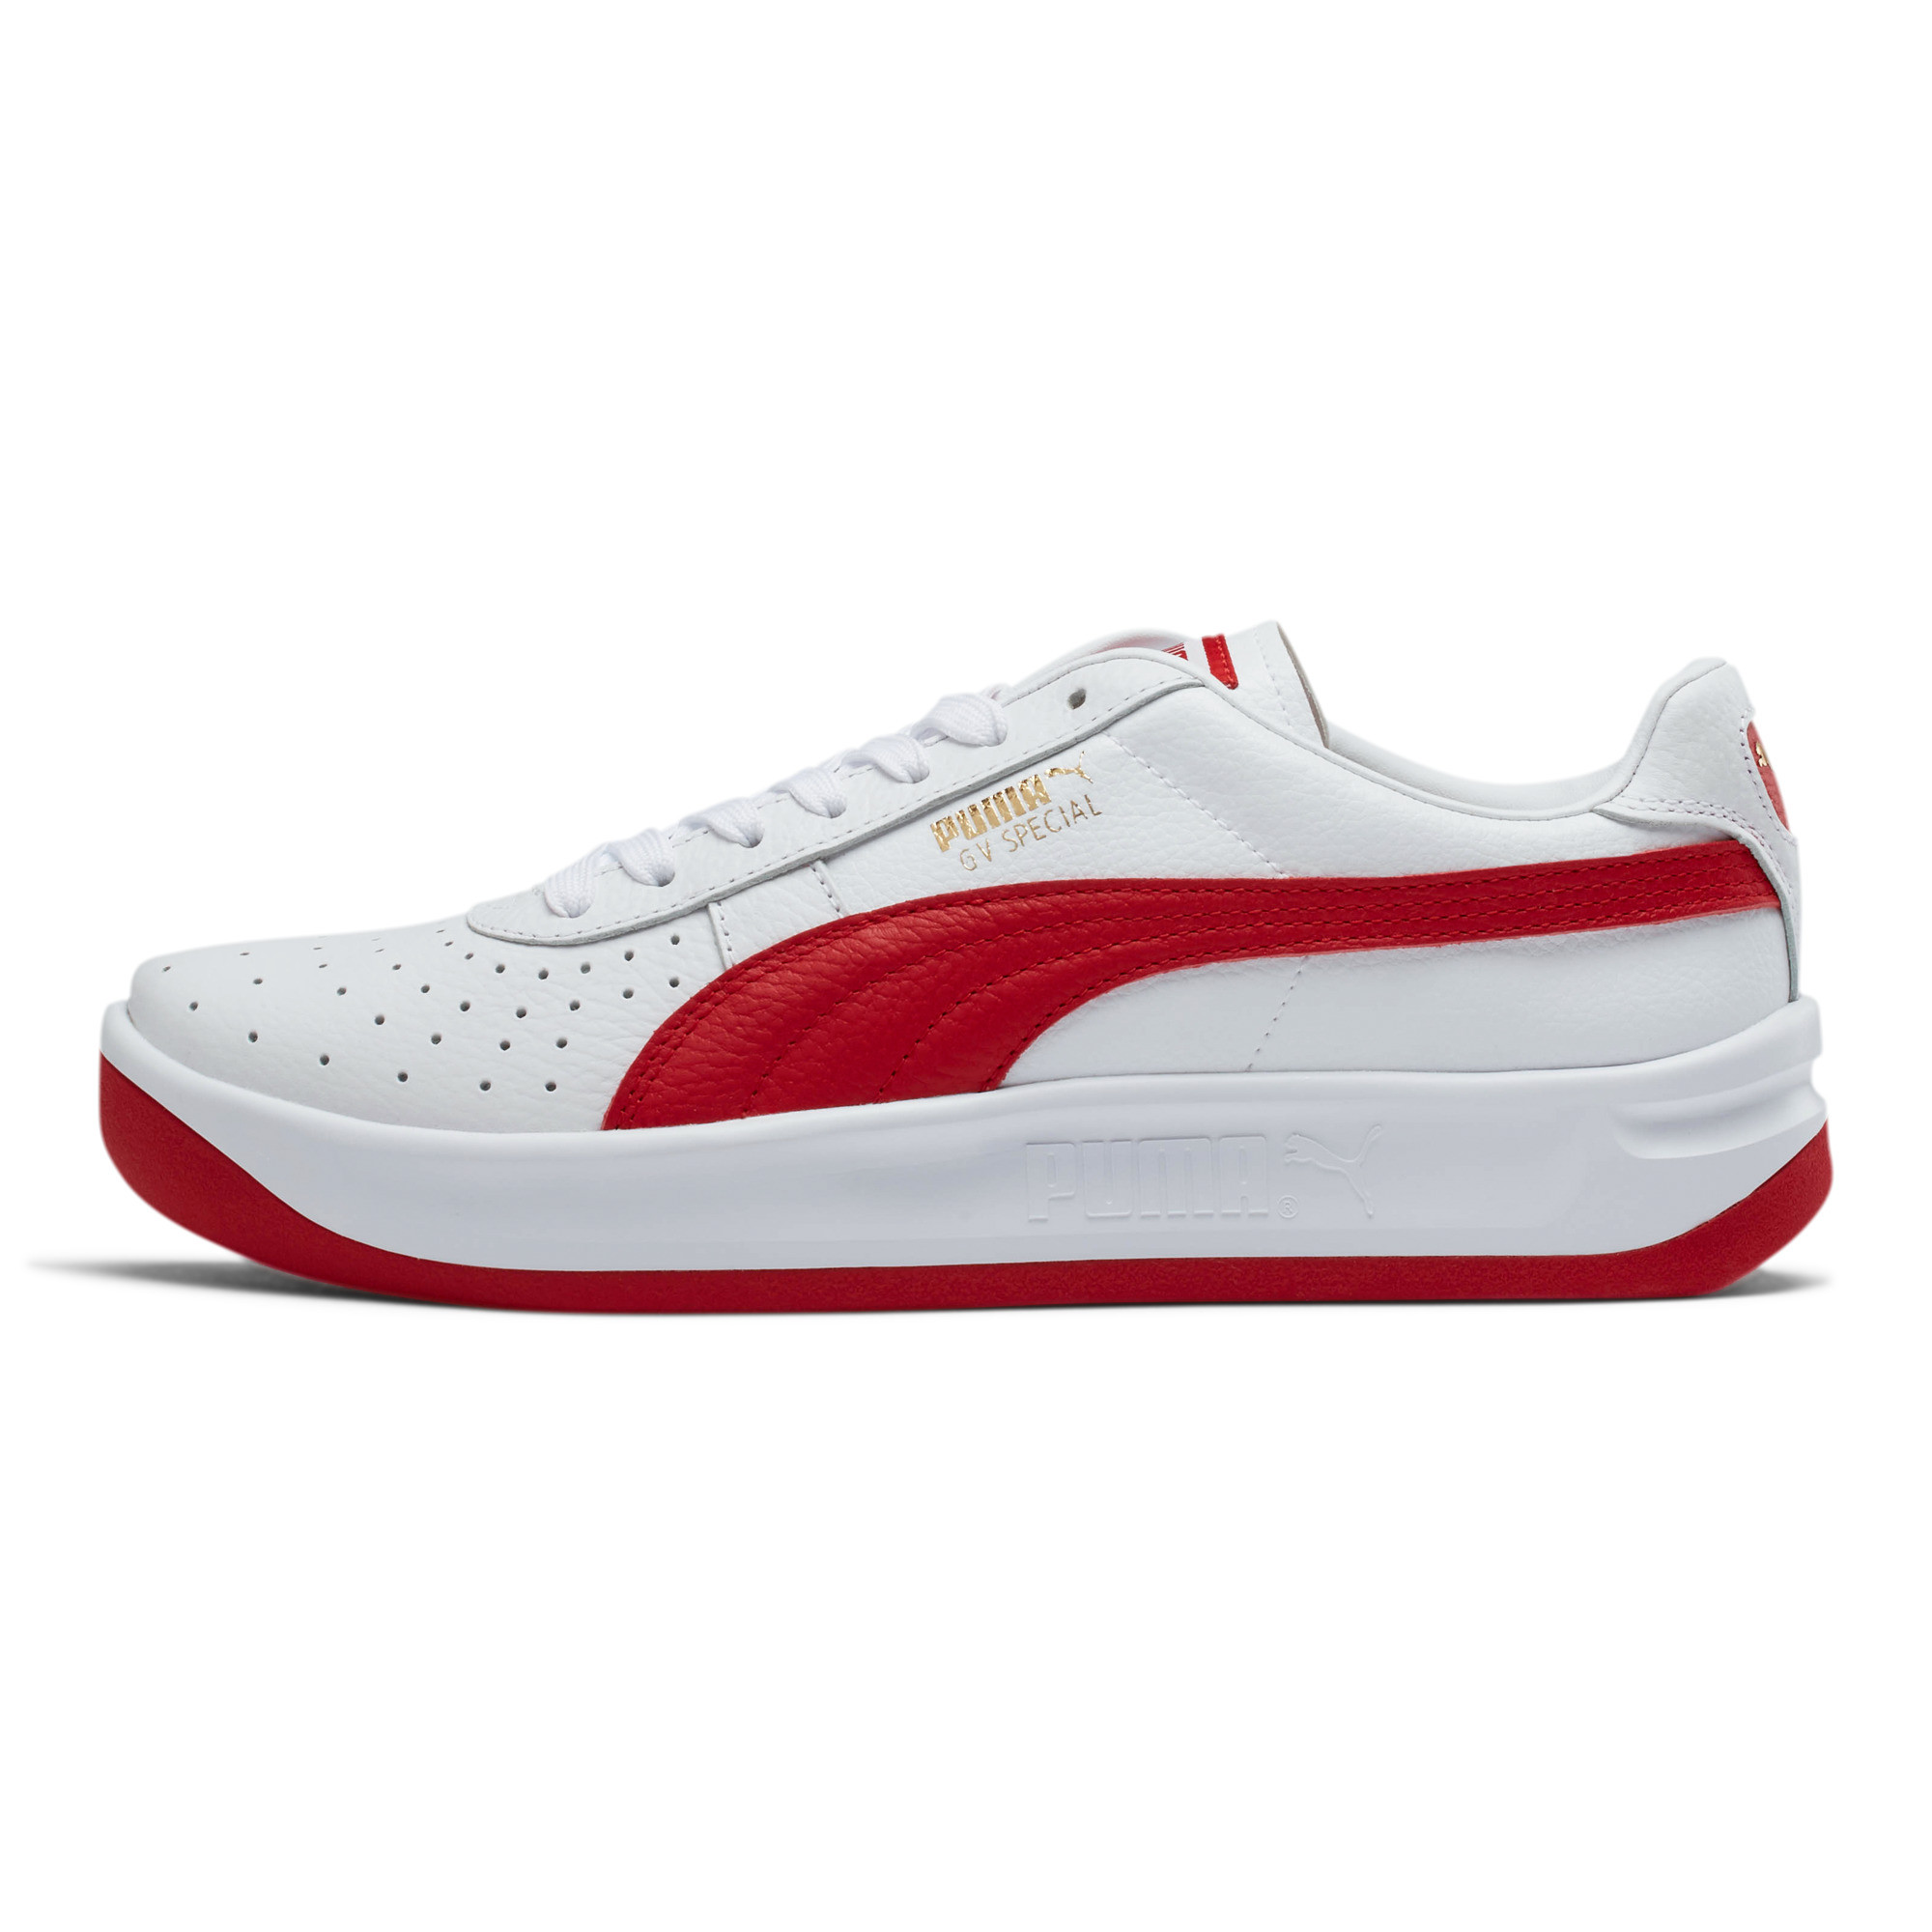 PUMA-Men-039-s-GV-Special-Sneakers thumbnail 8